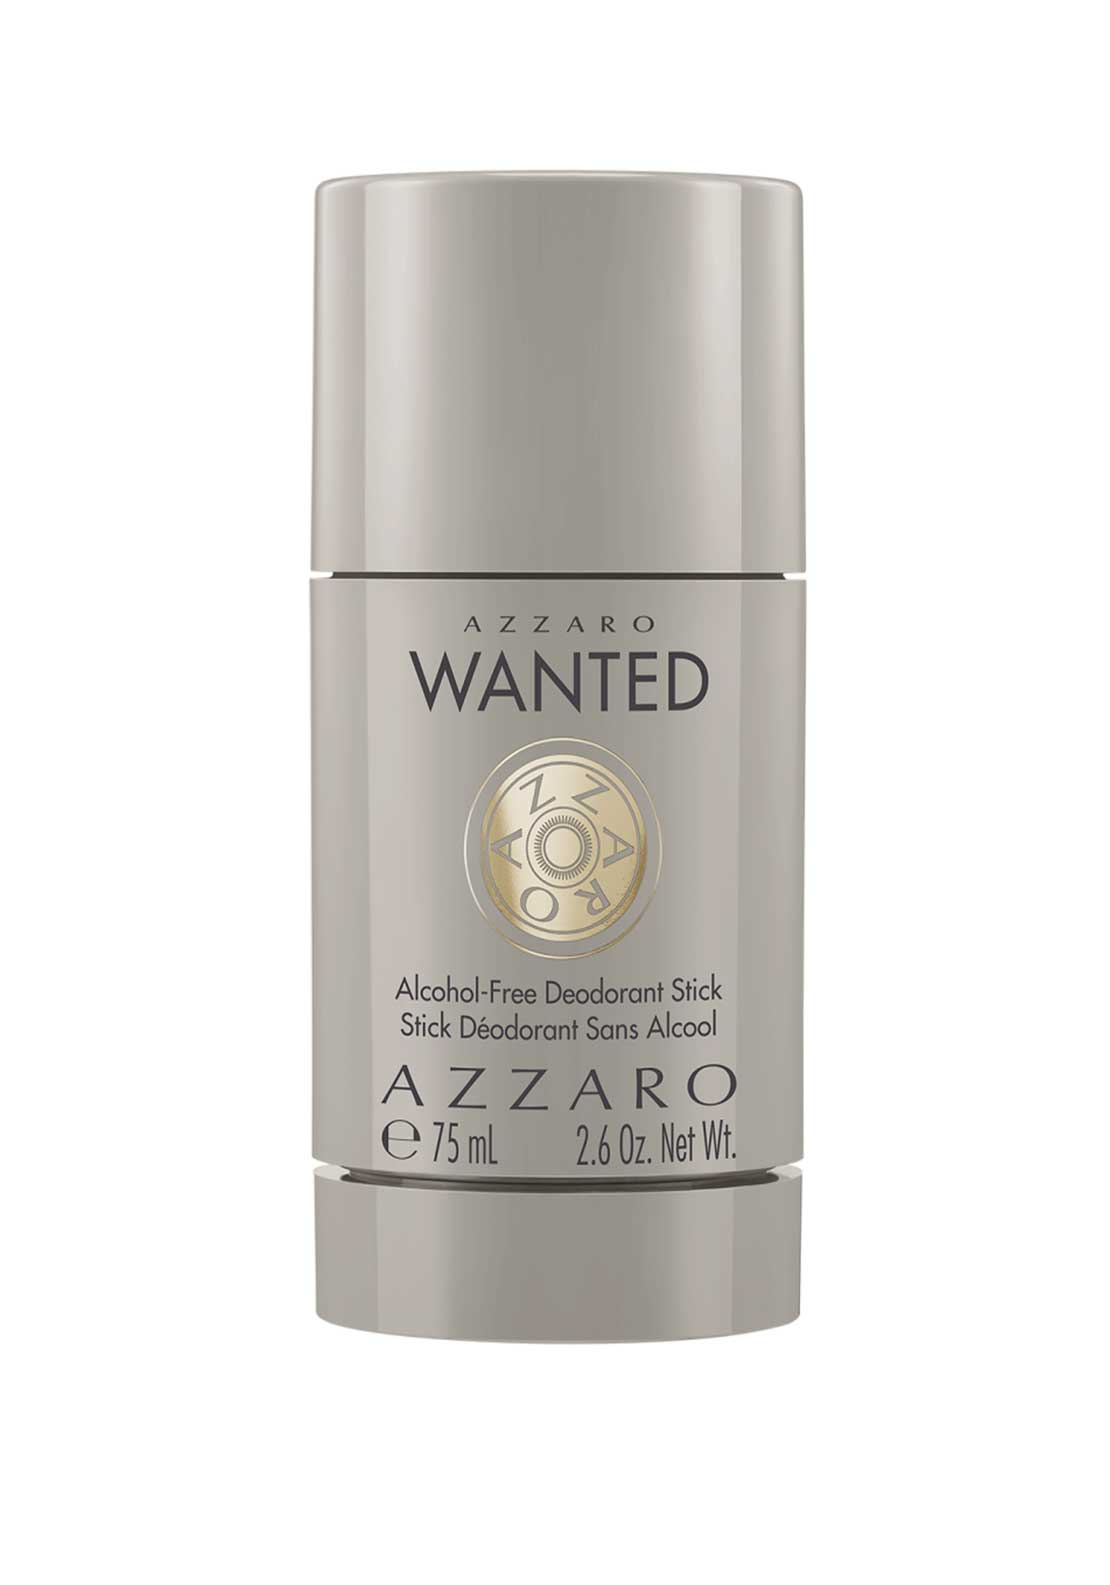 Azzaro Wanted Spray Alcohol- Free Deodorant Stick